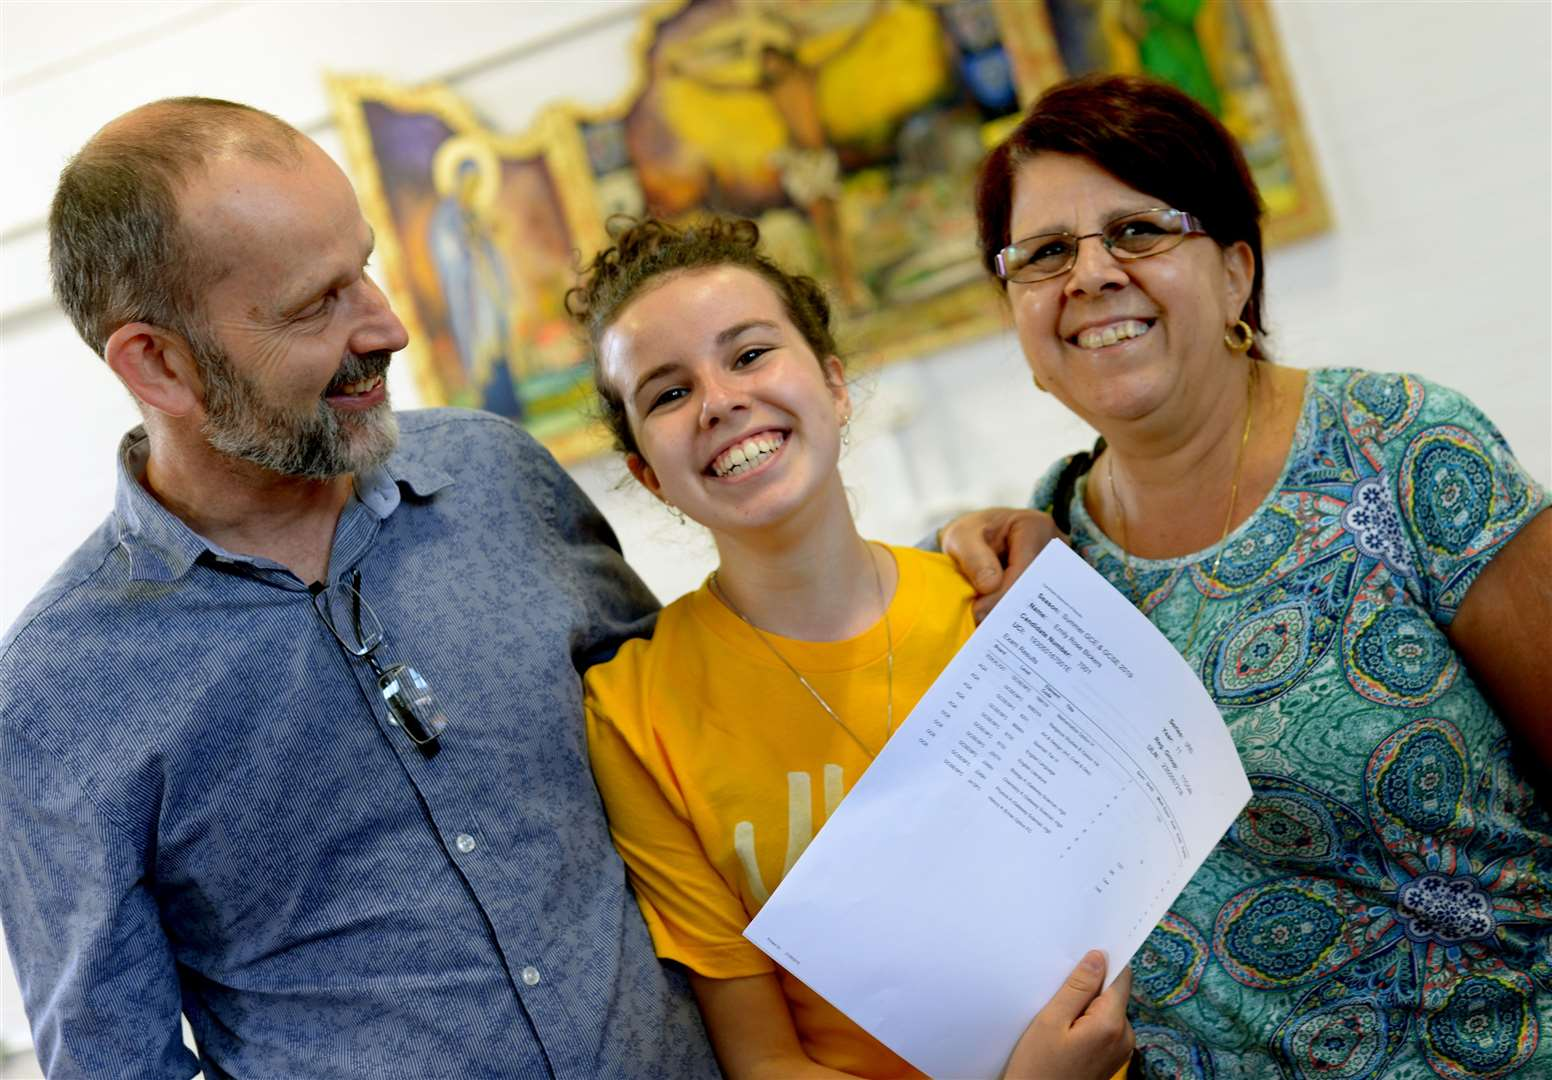 Students at St Benedicts RC Upper School receive their GCSE results.Emily Bicker with parents Phil and AnnaPICTURE: Andy Abbott (15600475)